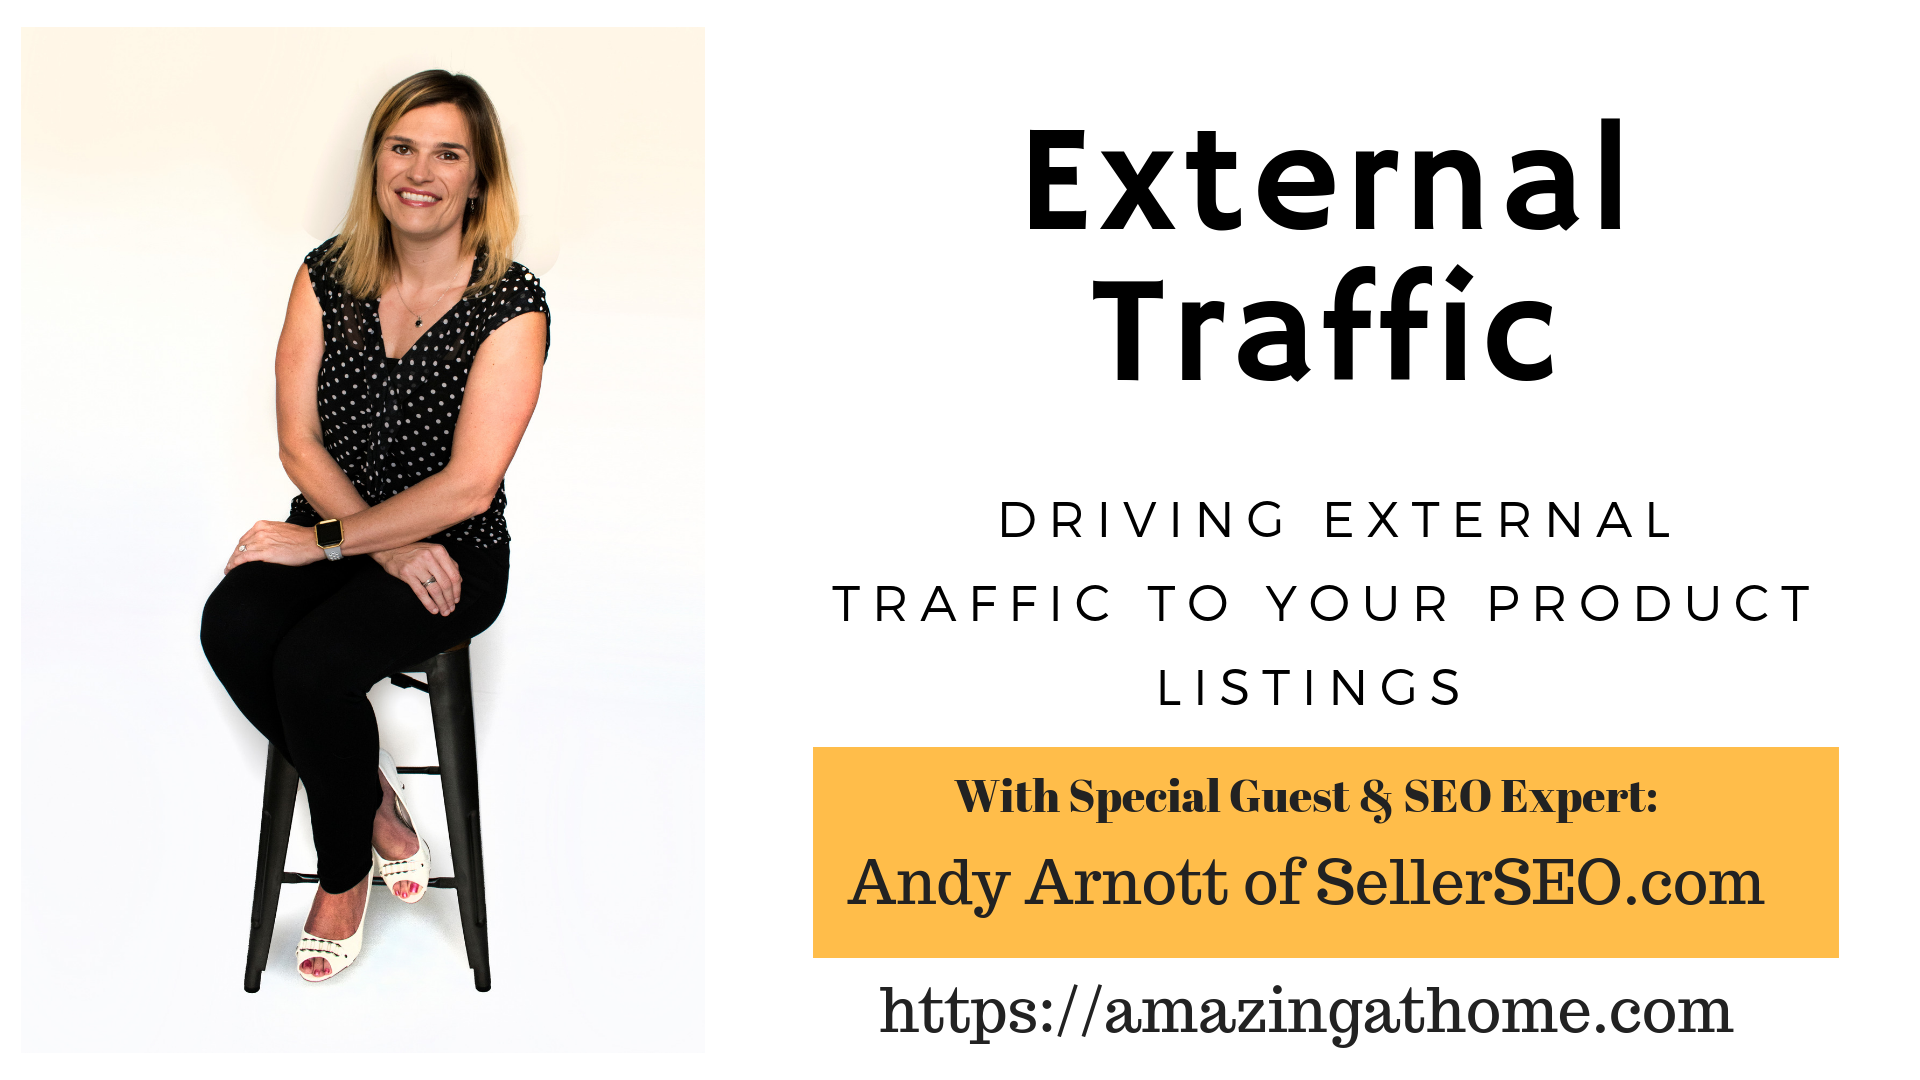 External Traffic - How to Rank your Amazon Product and Launch Successfully